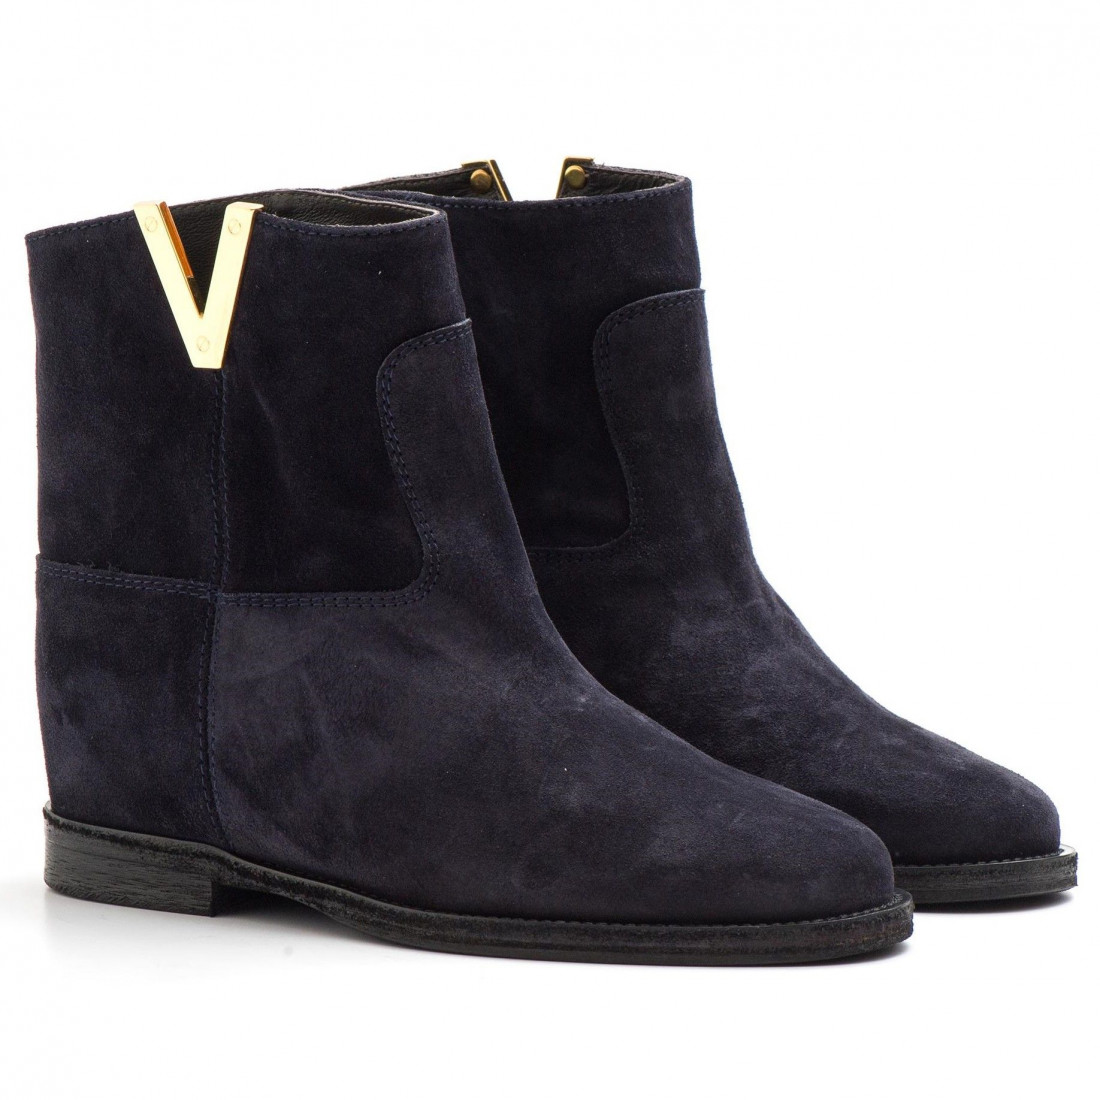 Ankle boots in blue suede with internal